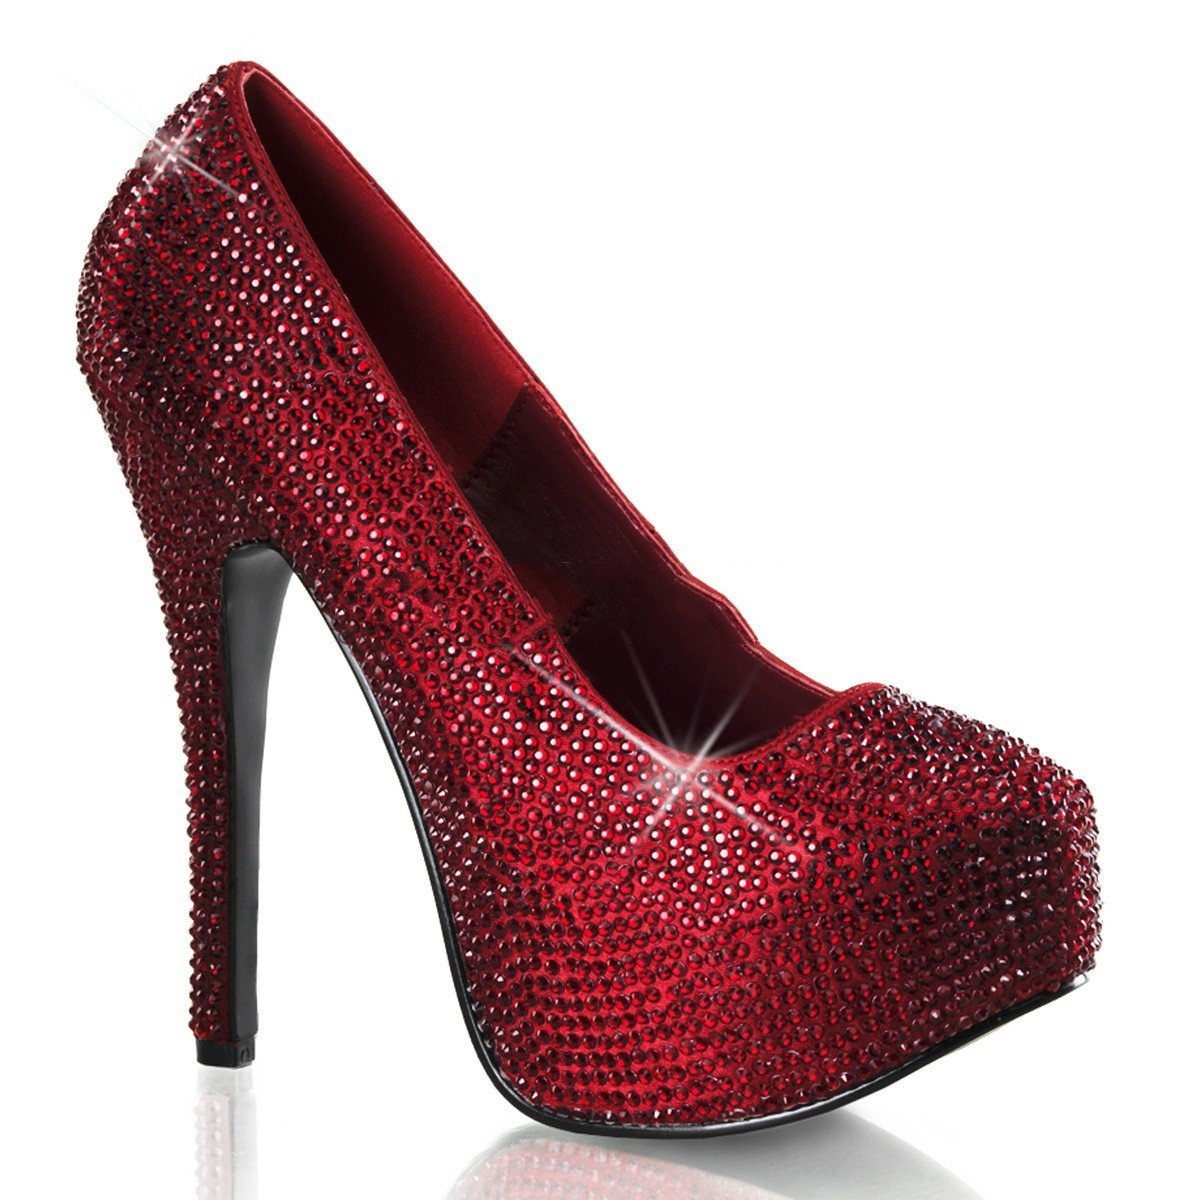 Bordello Teeze-06R - - - Original Burlesque Plateau Pumps mit Strass-Besatz in Rubin Rot Größe EU-41 42 US-11 UK-8 08061a